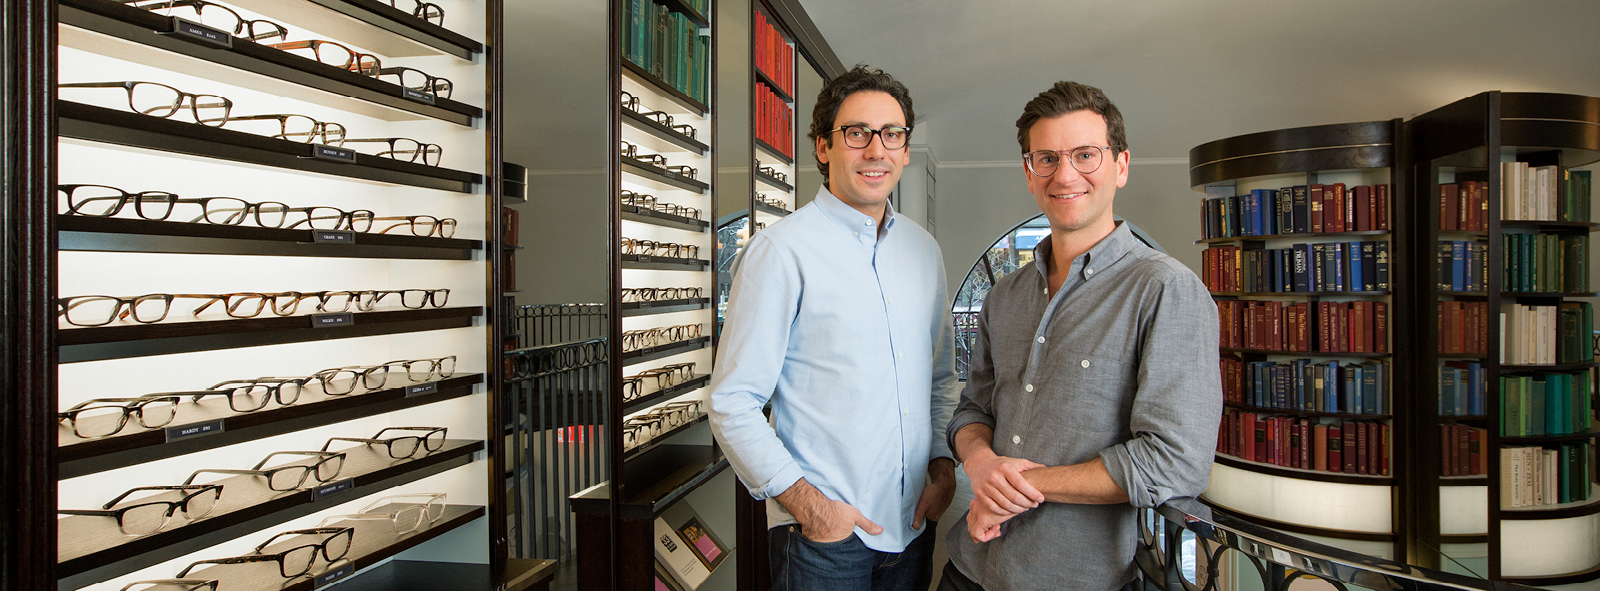 Image of First Republic Entrepreneur client(s) Neil Blumenthal and Dave Gilboa